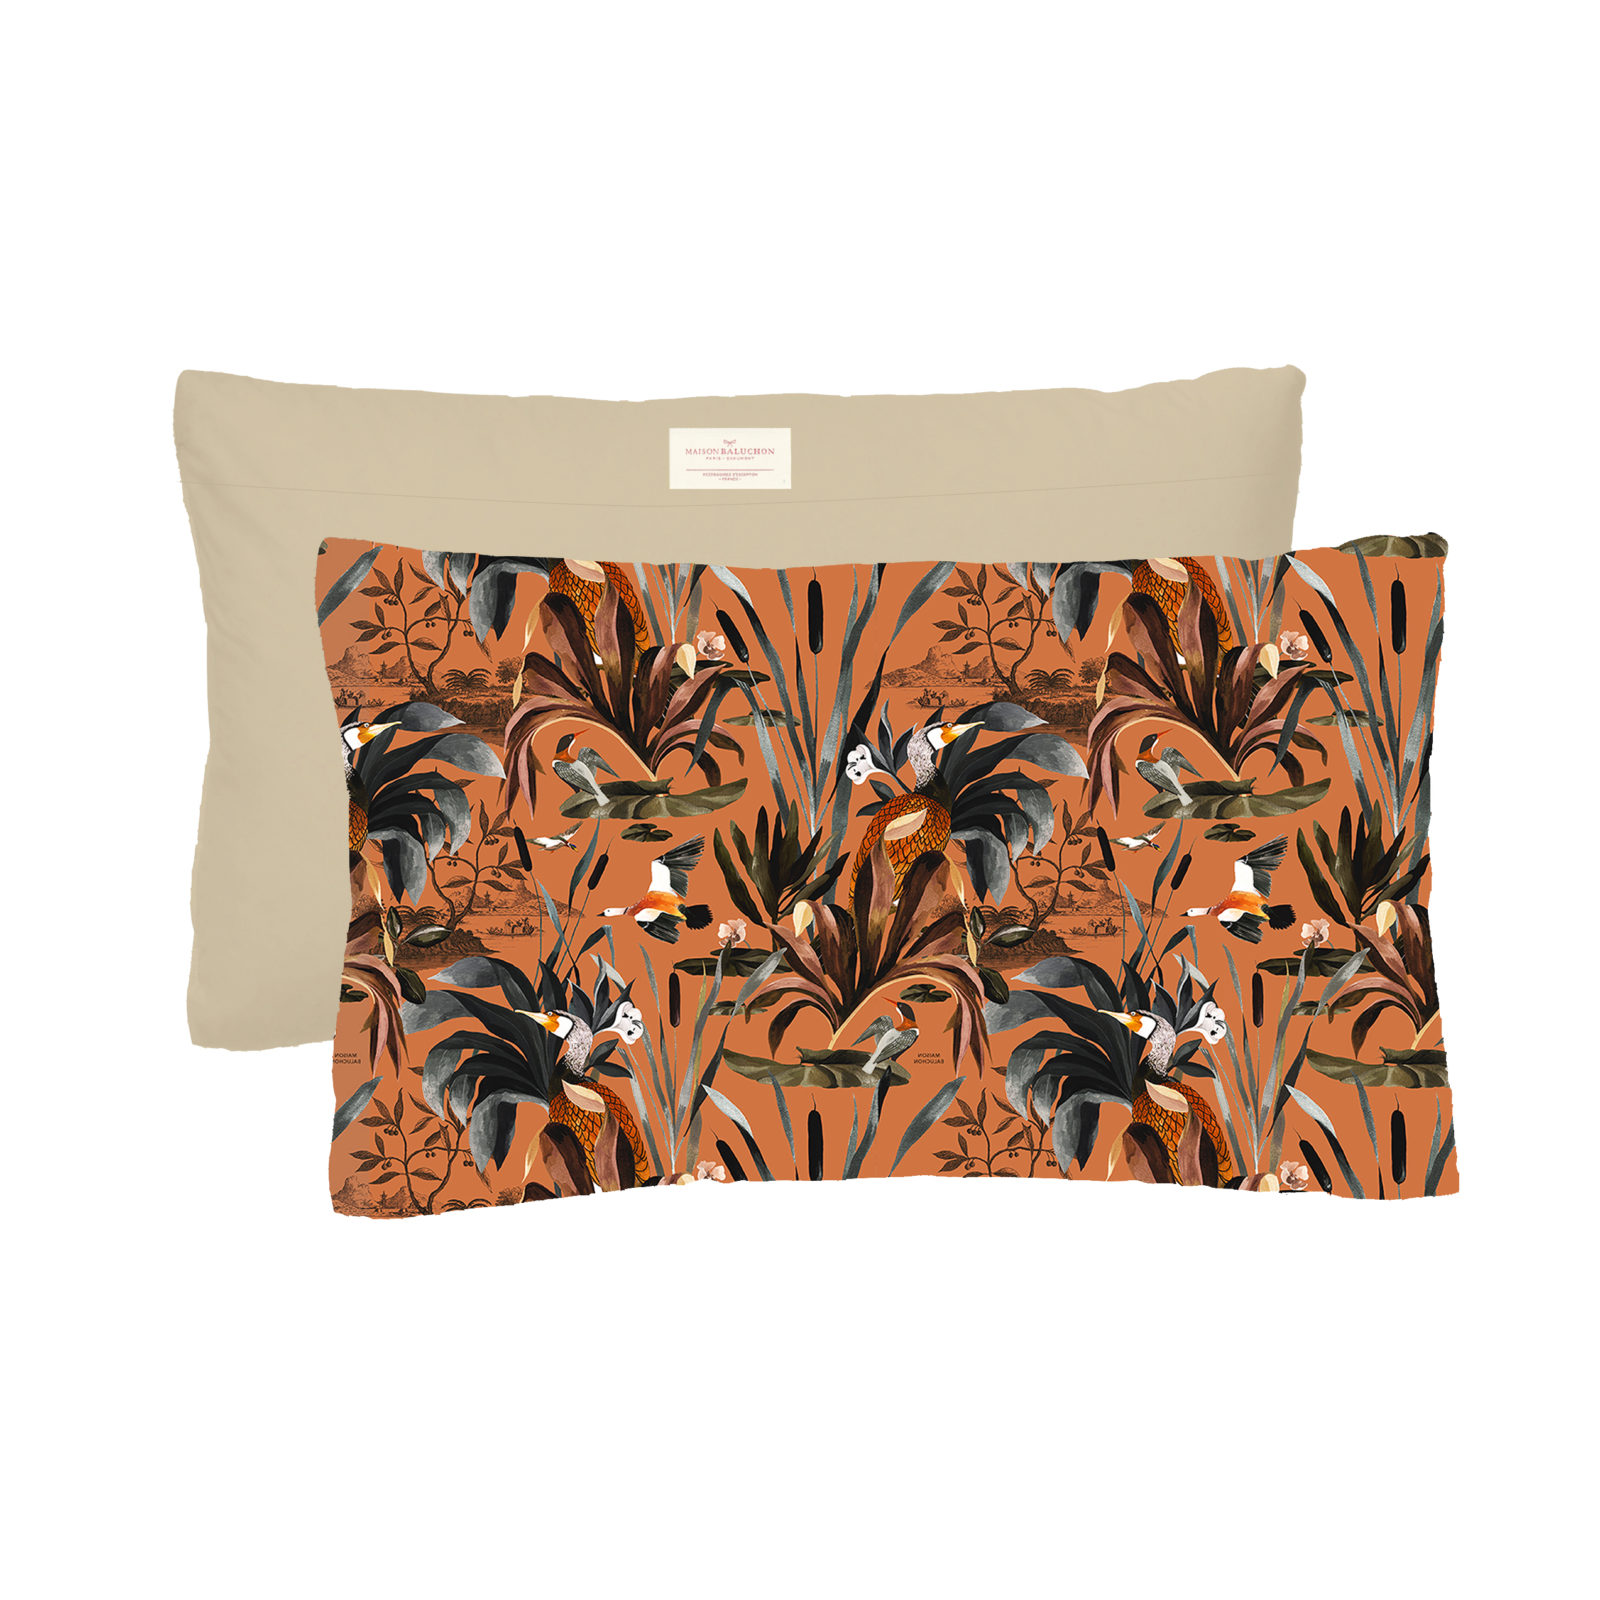 Coussin Format 50x30 cm Sauvage N°26 - Terracotta